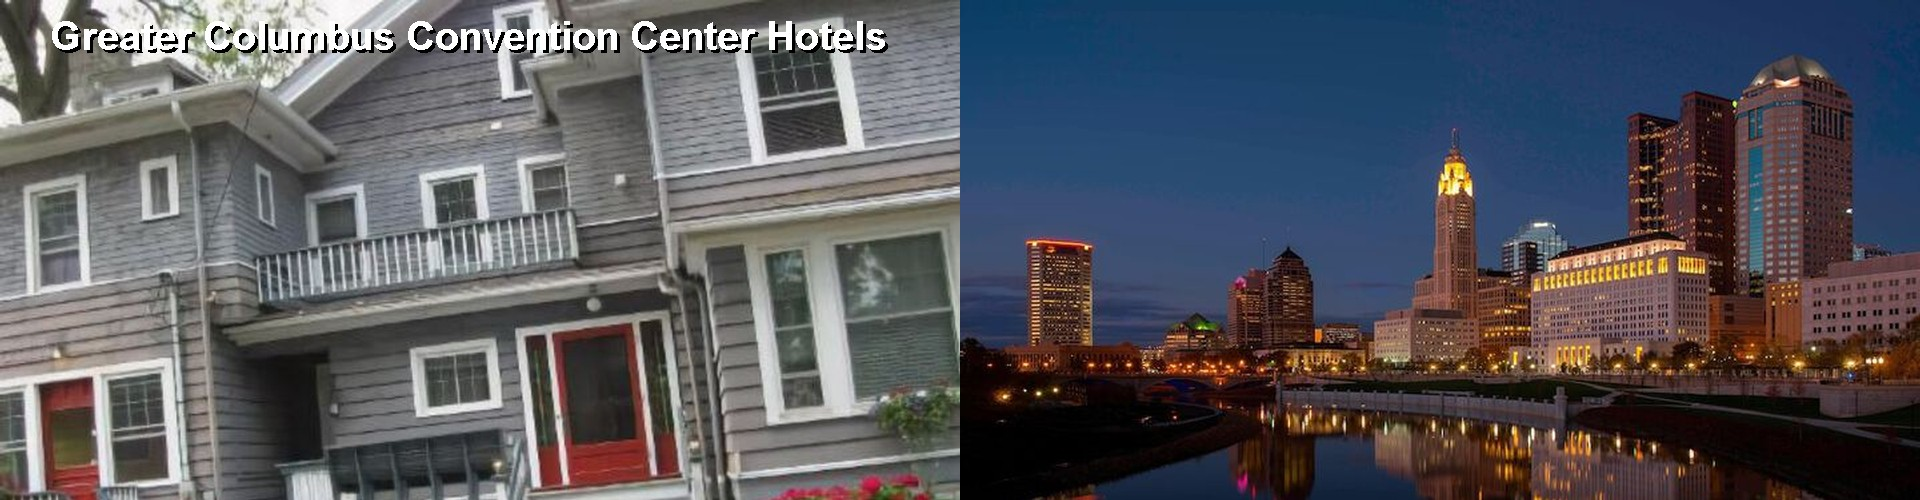 $50+ Hotels Near Greater Columbus Convention Center OH